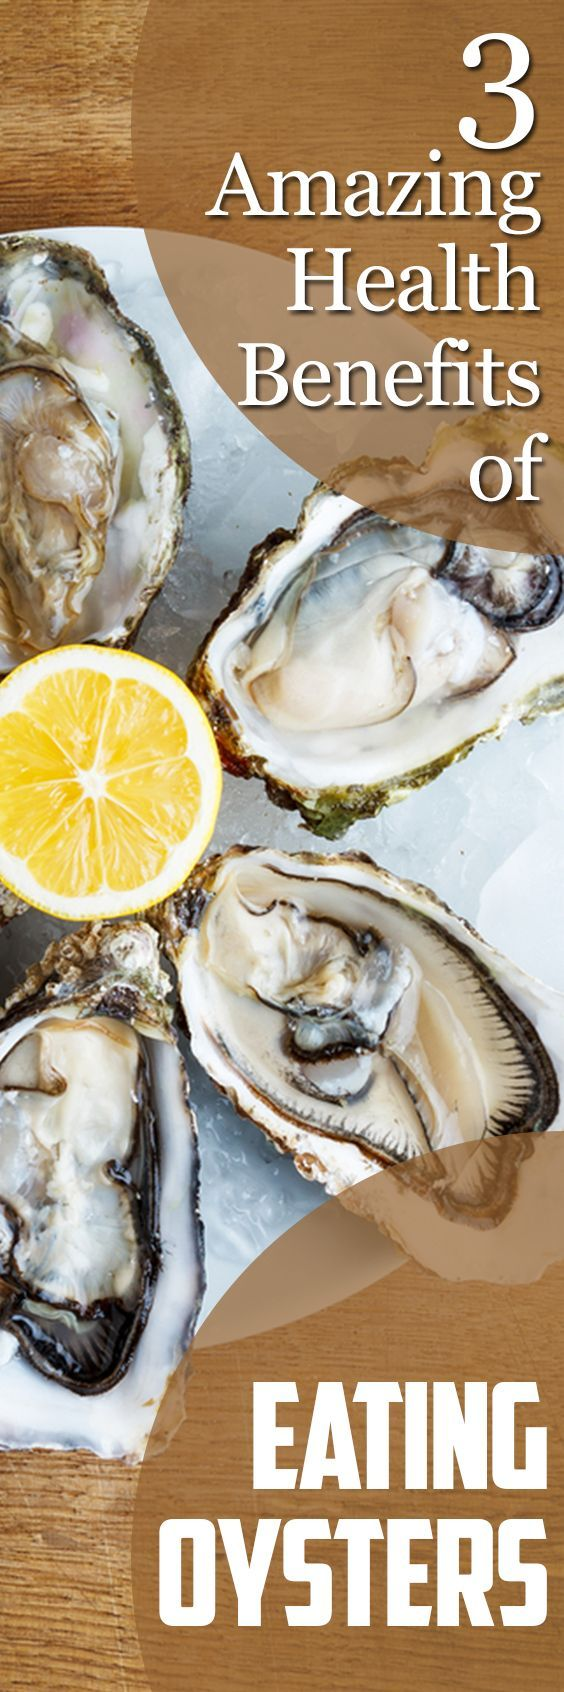 3 Amazing Health Benefits of Eating Oysters